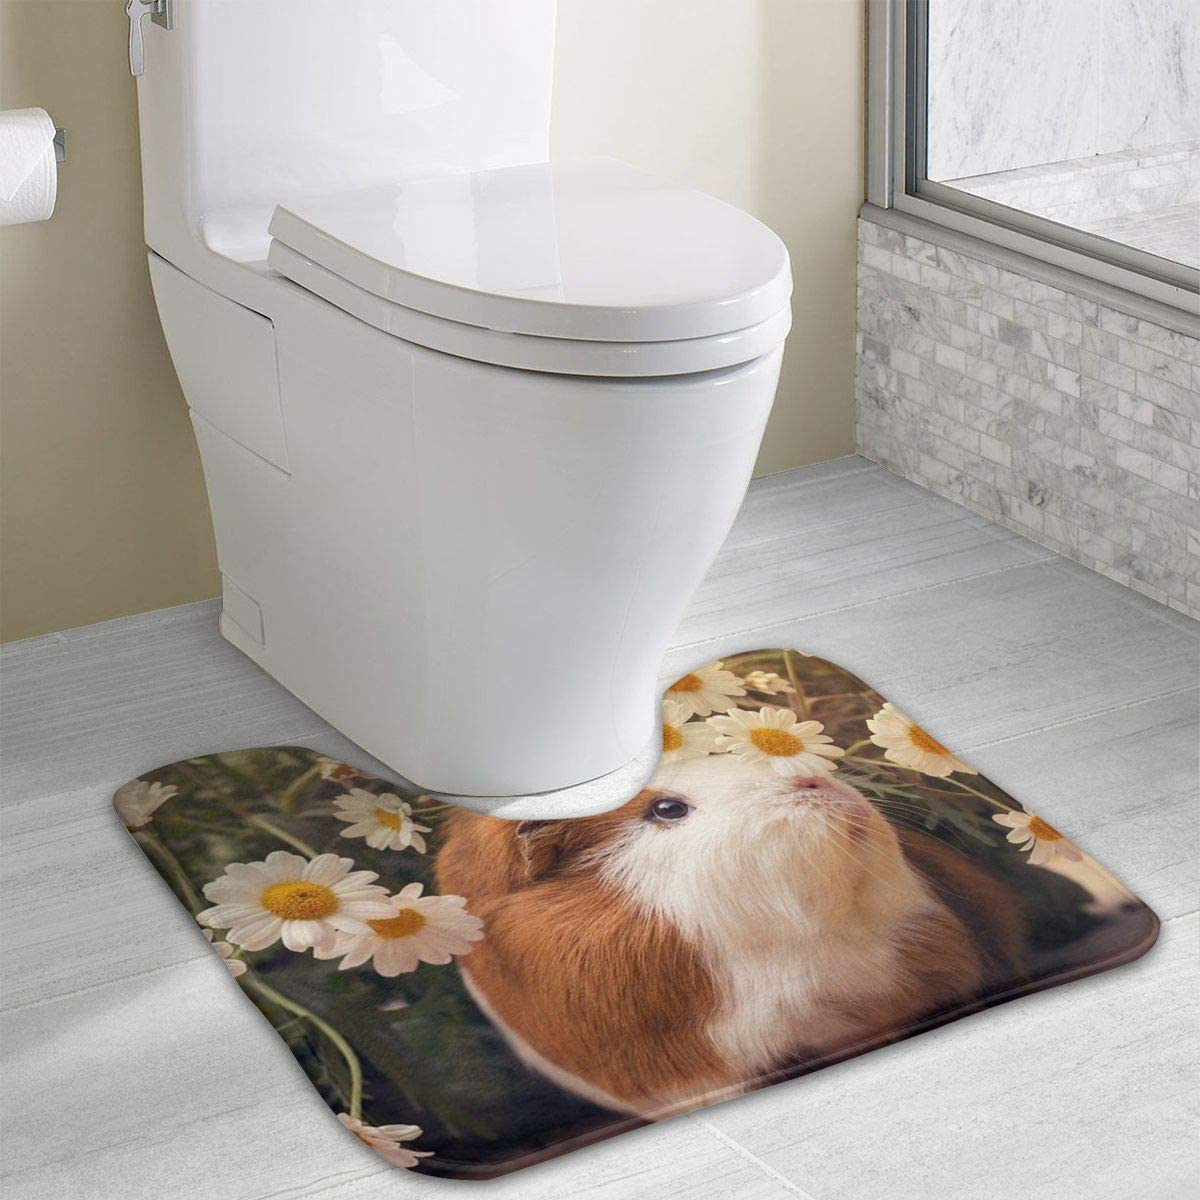 NiYoung Guinea Pigs Flowers Print Contour Mat Non Skid Memory Foam Toilet Bath Rug Carpet Quick Dry Mat Bath Mat, Multi-Purpose Home Decor for Bathroom, Hotel, Bedroom, Toilet